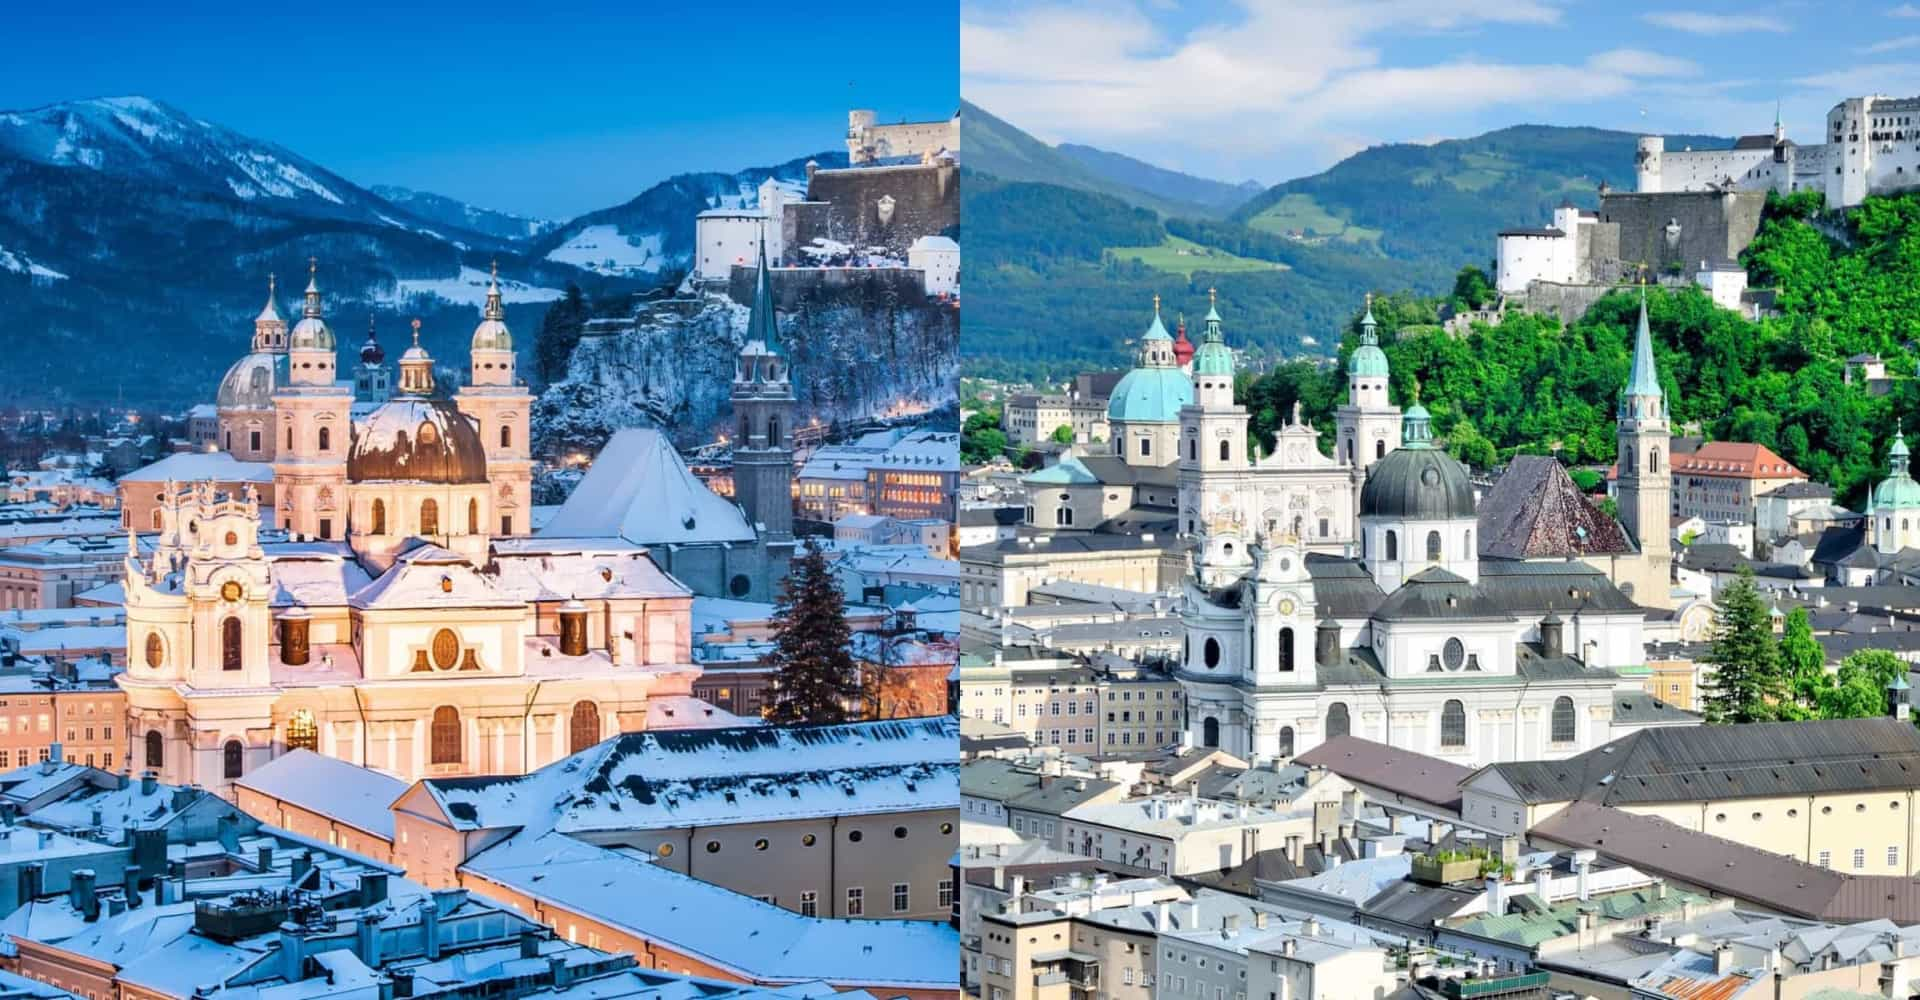 Insider Tips: Enchanting Salzburg is a city for any season